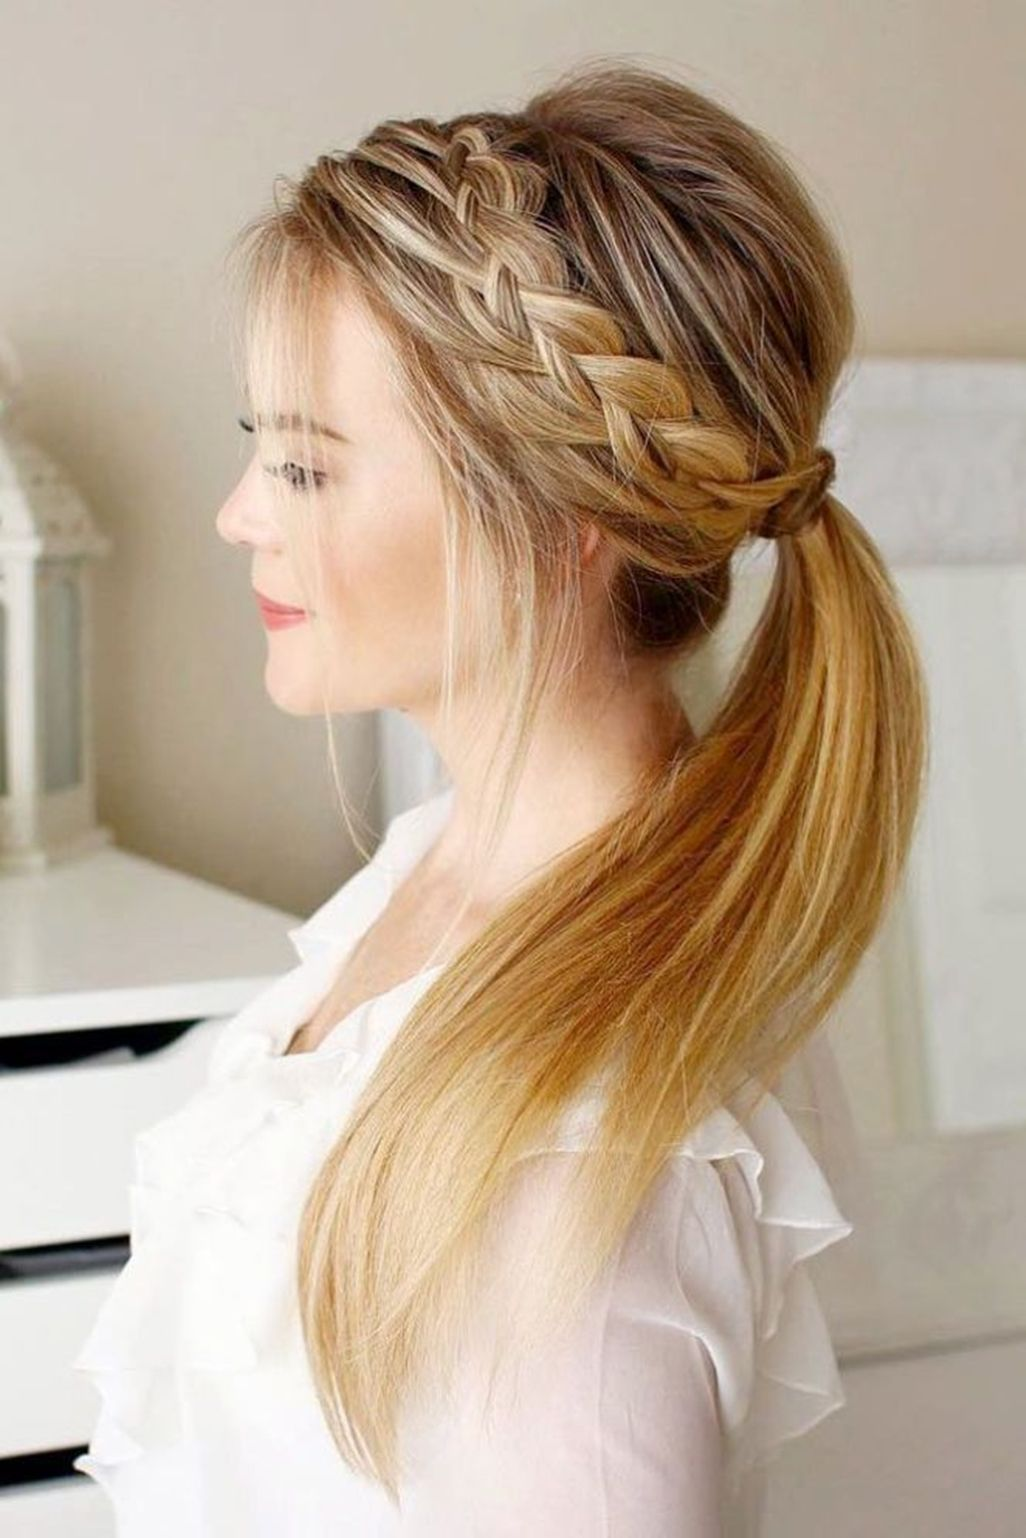 Optimize the potential of your long hair with easy hairstyle for